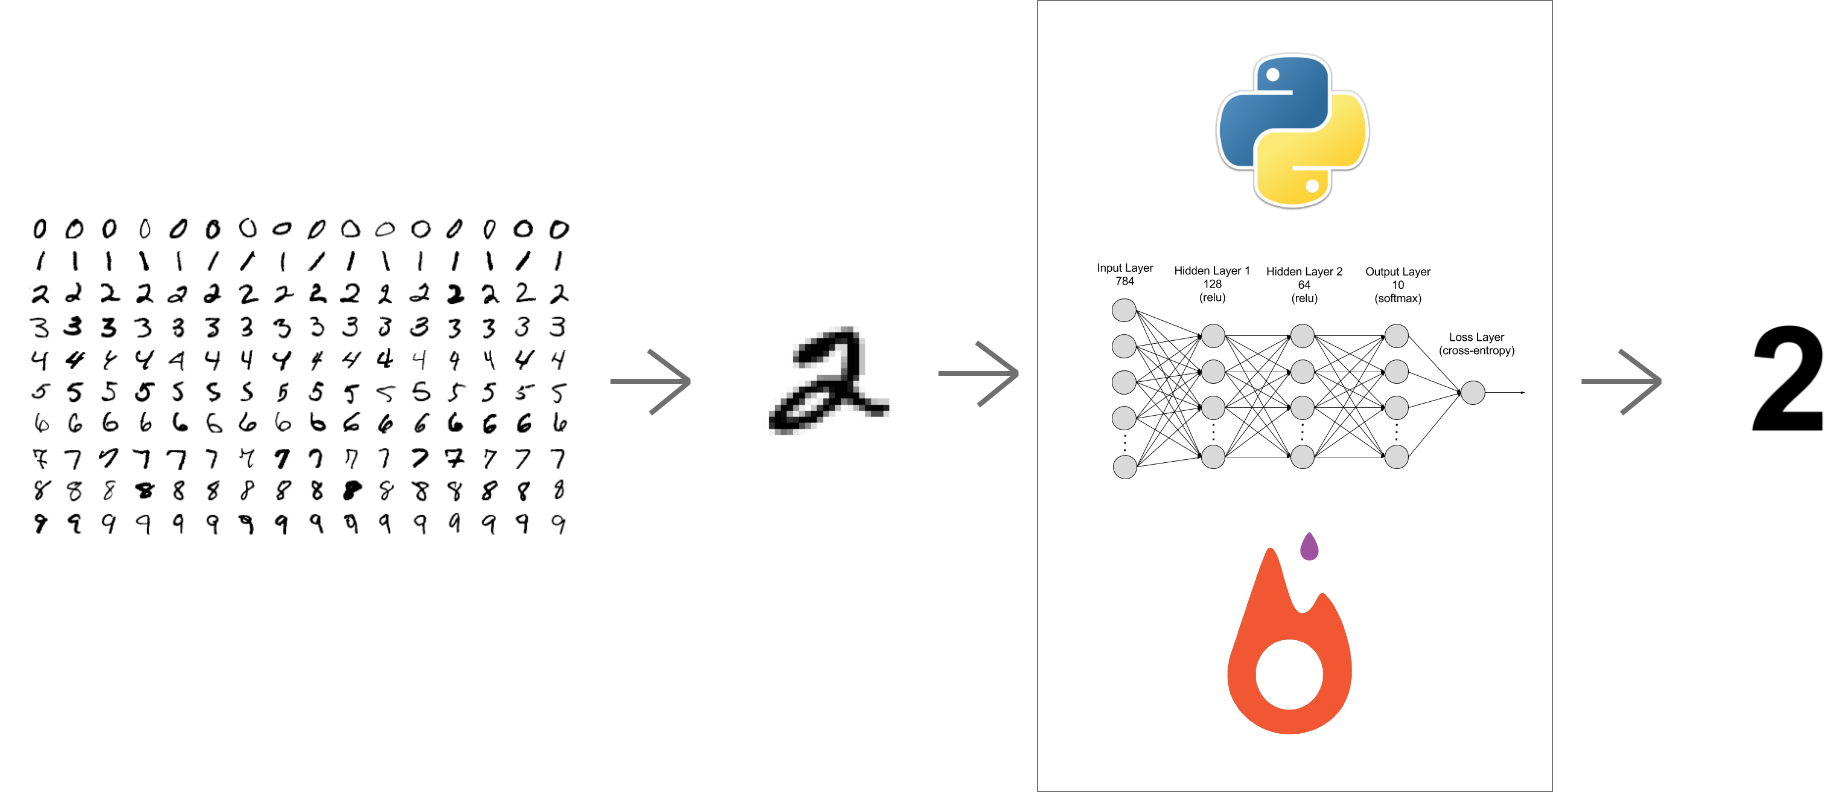 Handwritten Digit Recognition Using Pytorch Intro To Neural Networks By Amitrajit Bose Towards Data Science